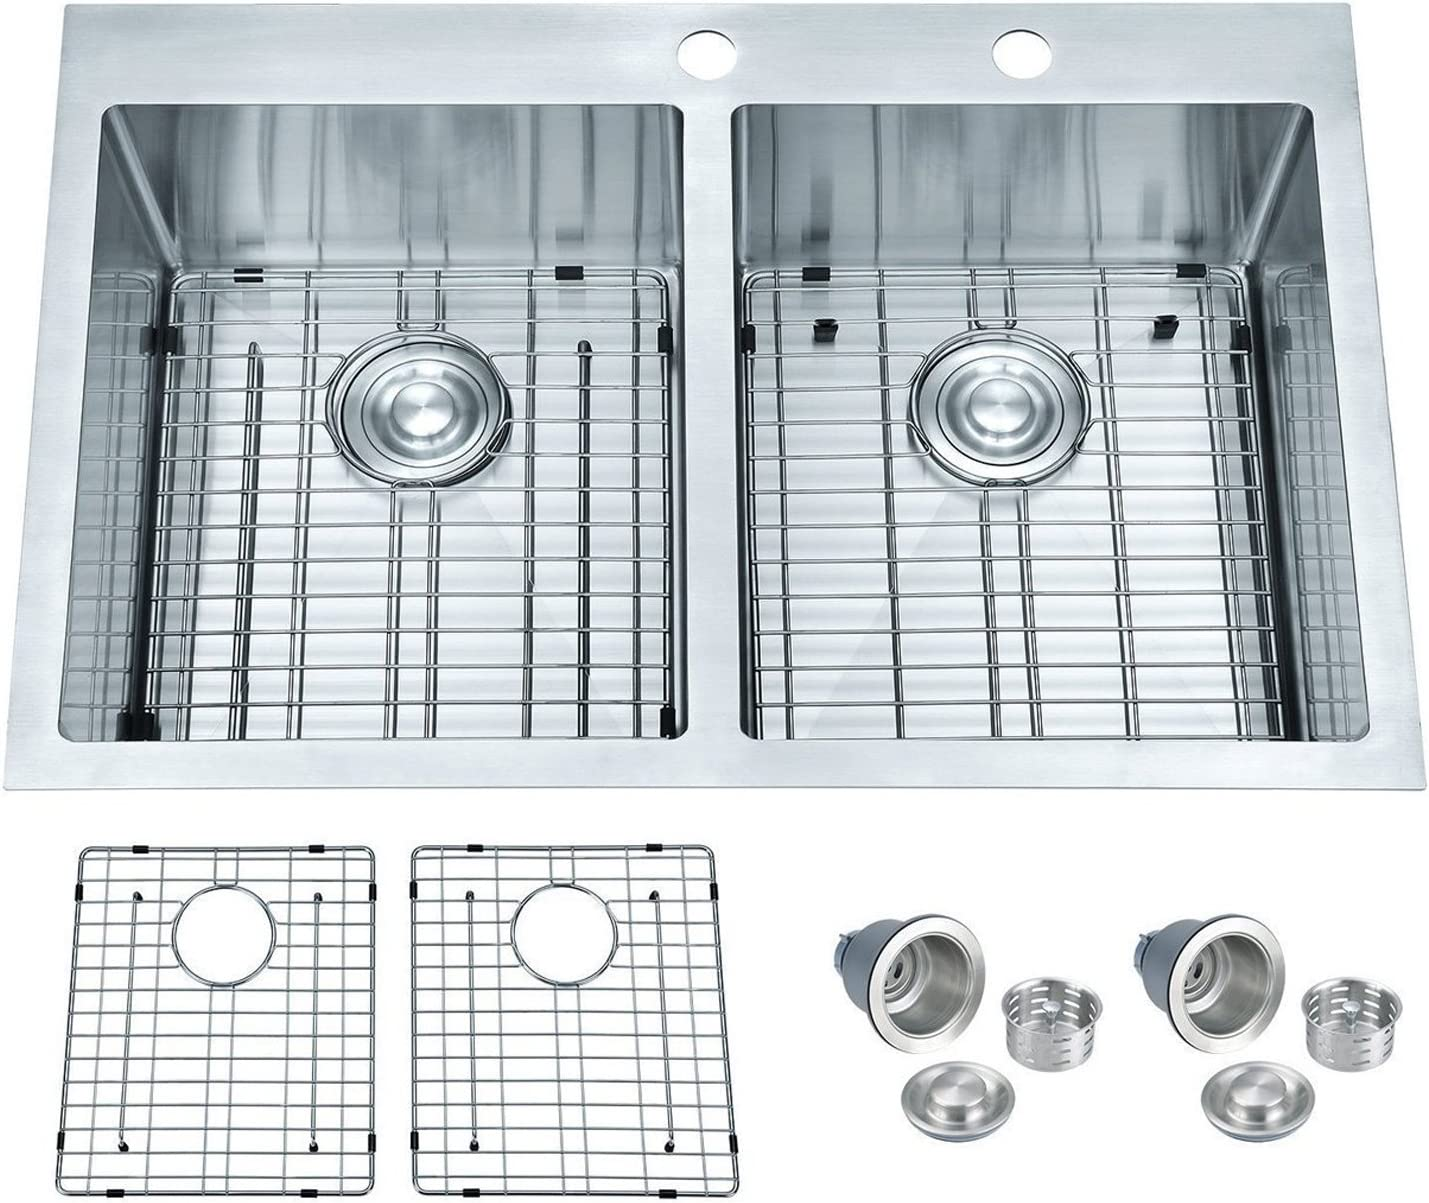 BILLION Topmount or Drop-in Sink 50 50 Equal Double Bowl Drop-in Overmount 16 Gauge Handcrafted Stainless Steel Kitchen Sink, with Bottom Grid and Drainer, 33 L x 22 W x 10 H